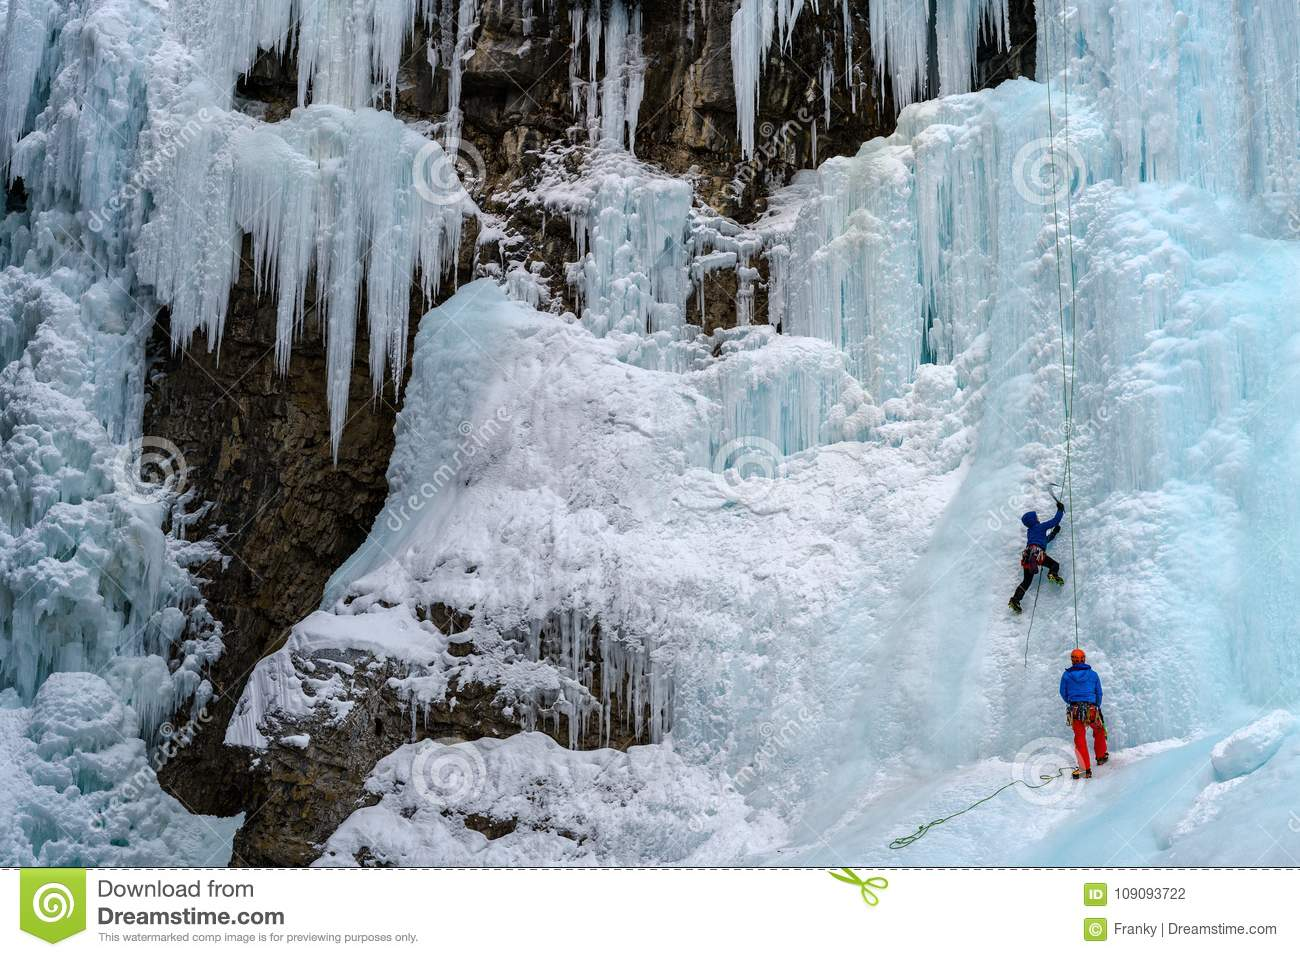 Ice Climbers on the frozen waterfalls in Johnston Canyon, Banff